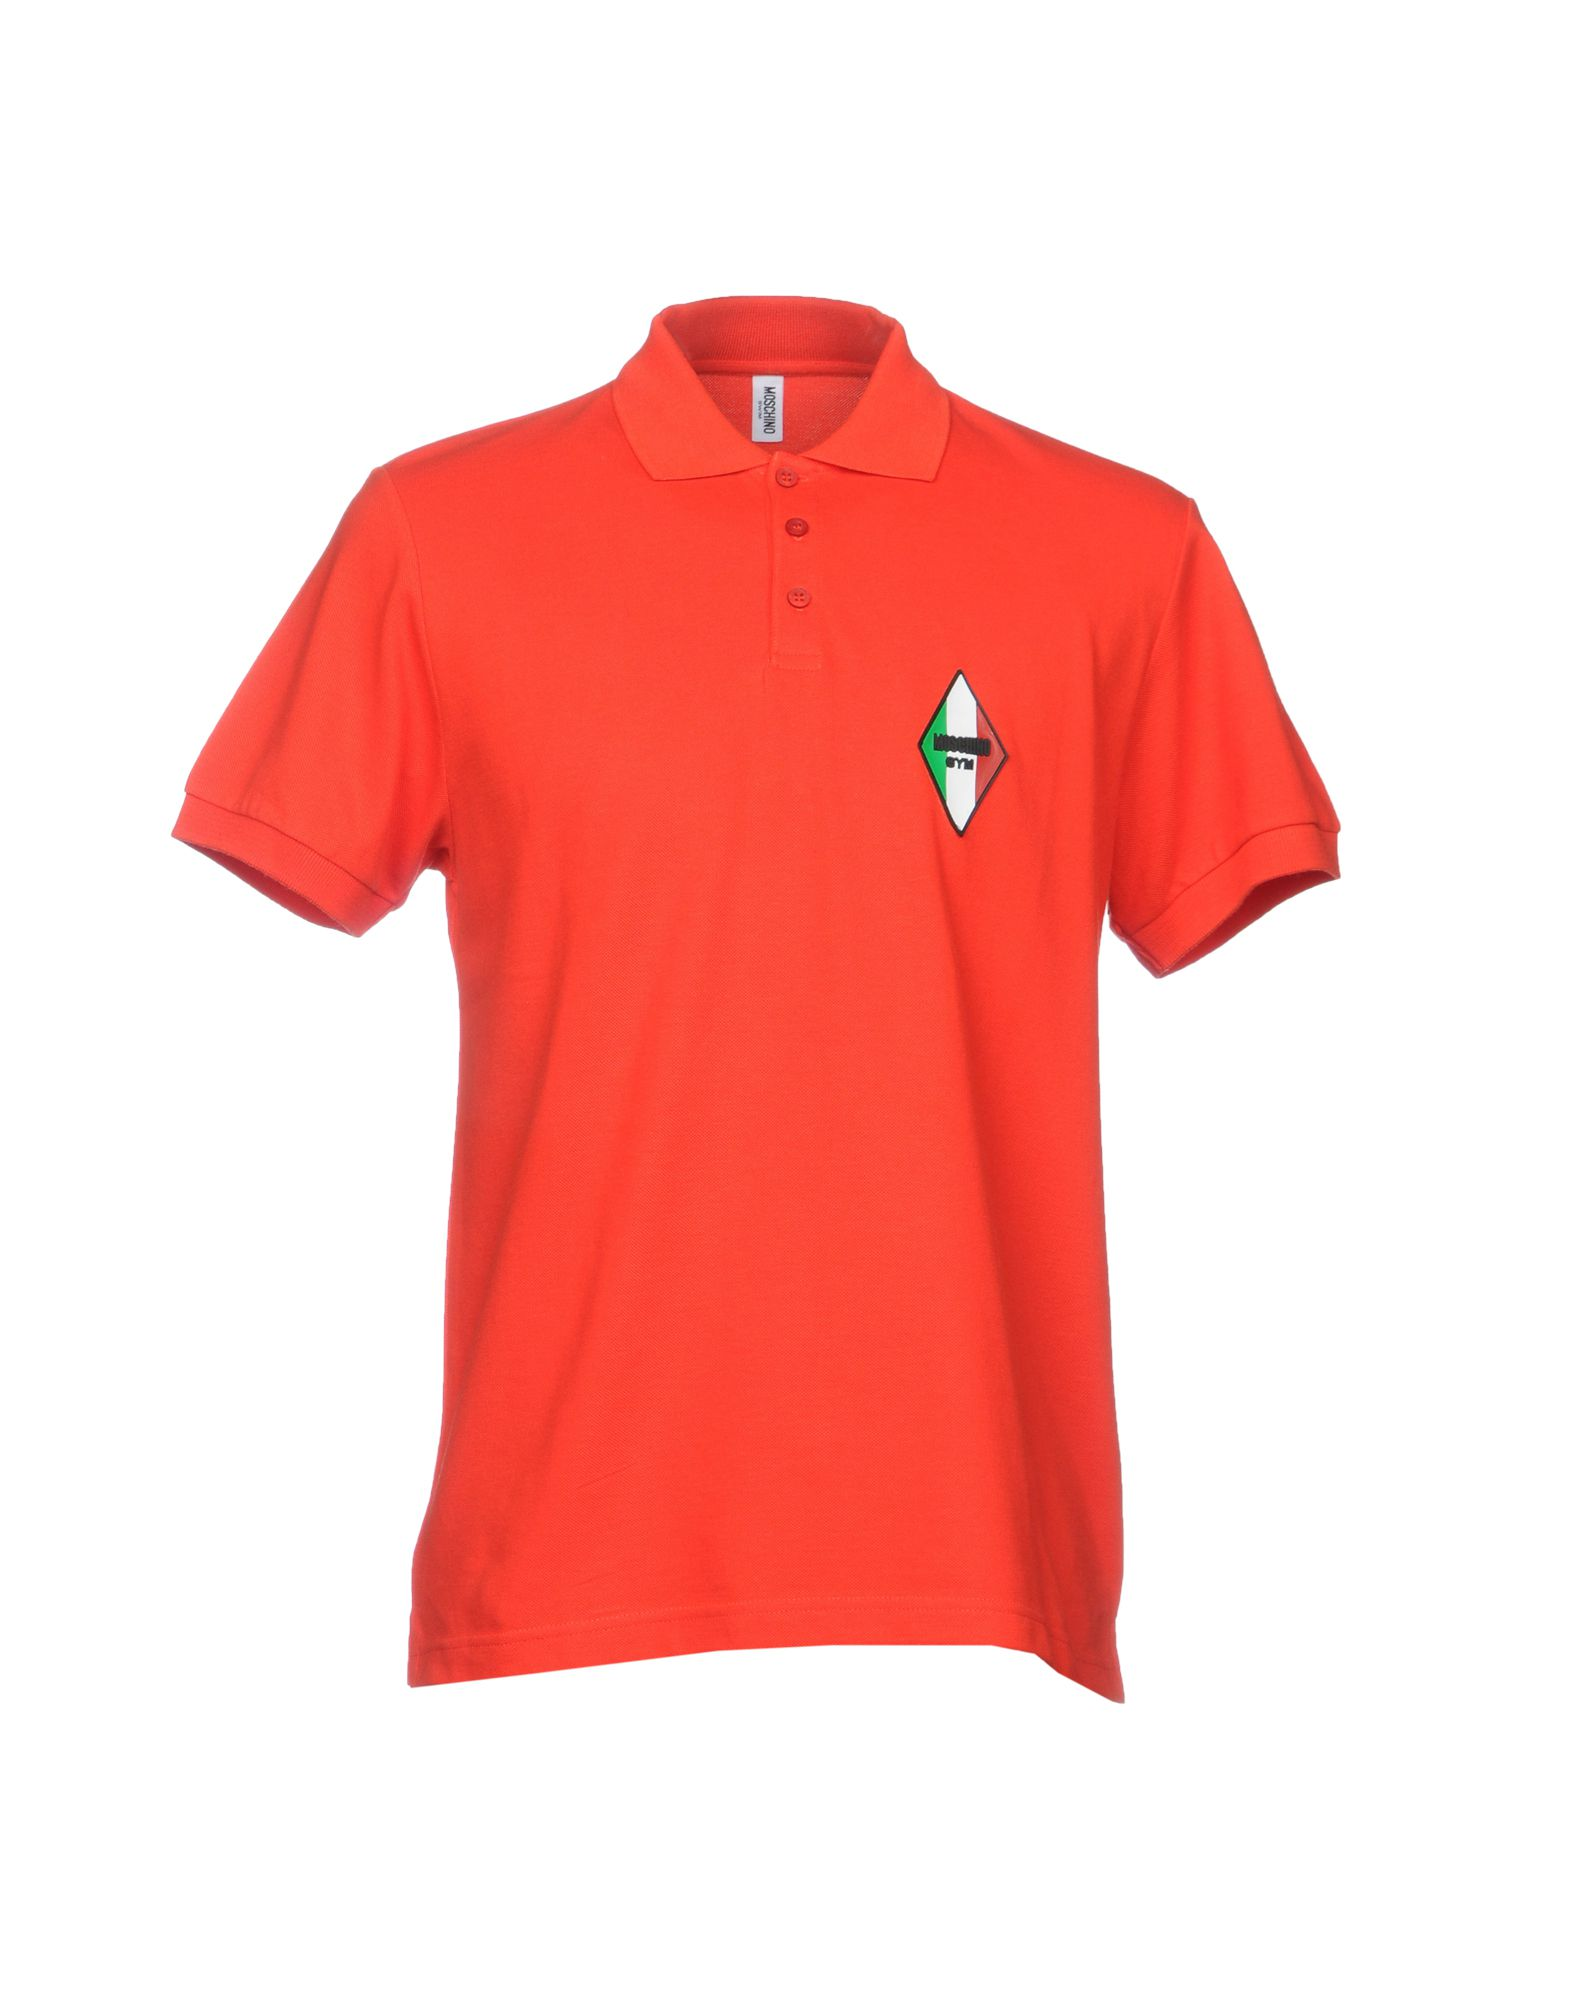 MOSCHINO SWIM Polo Shirt in Red